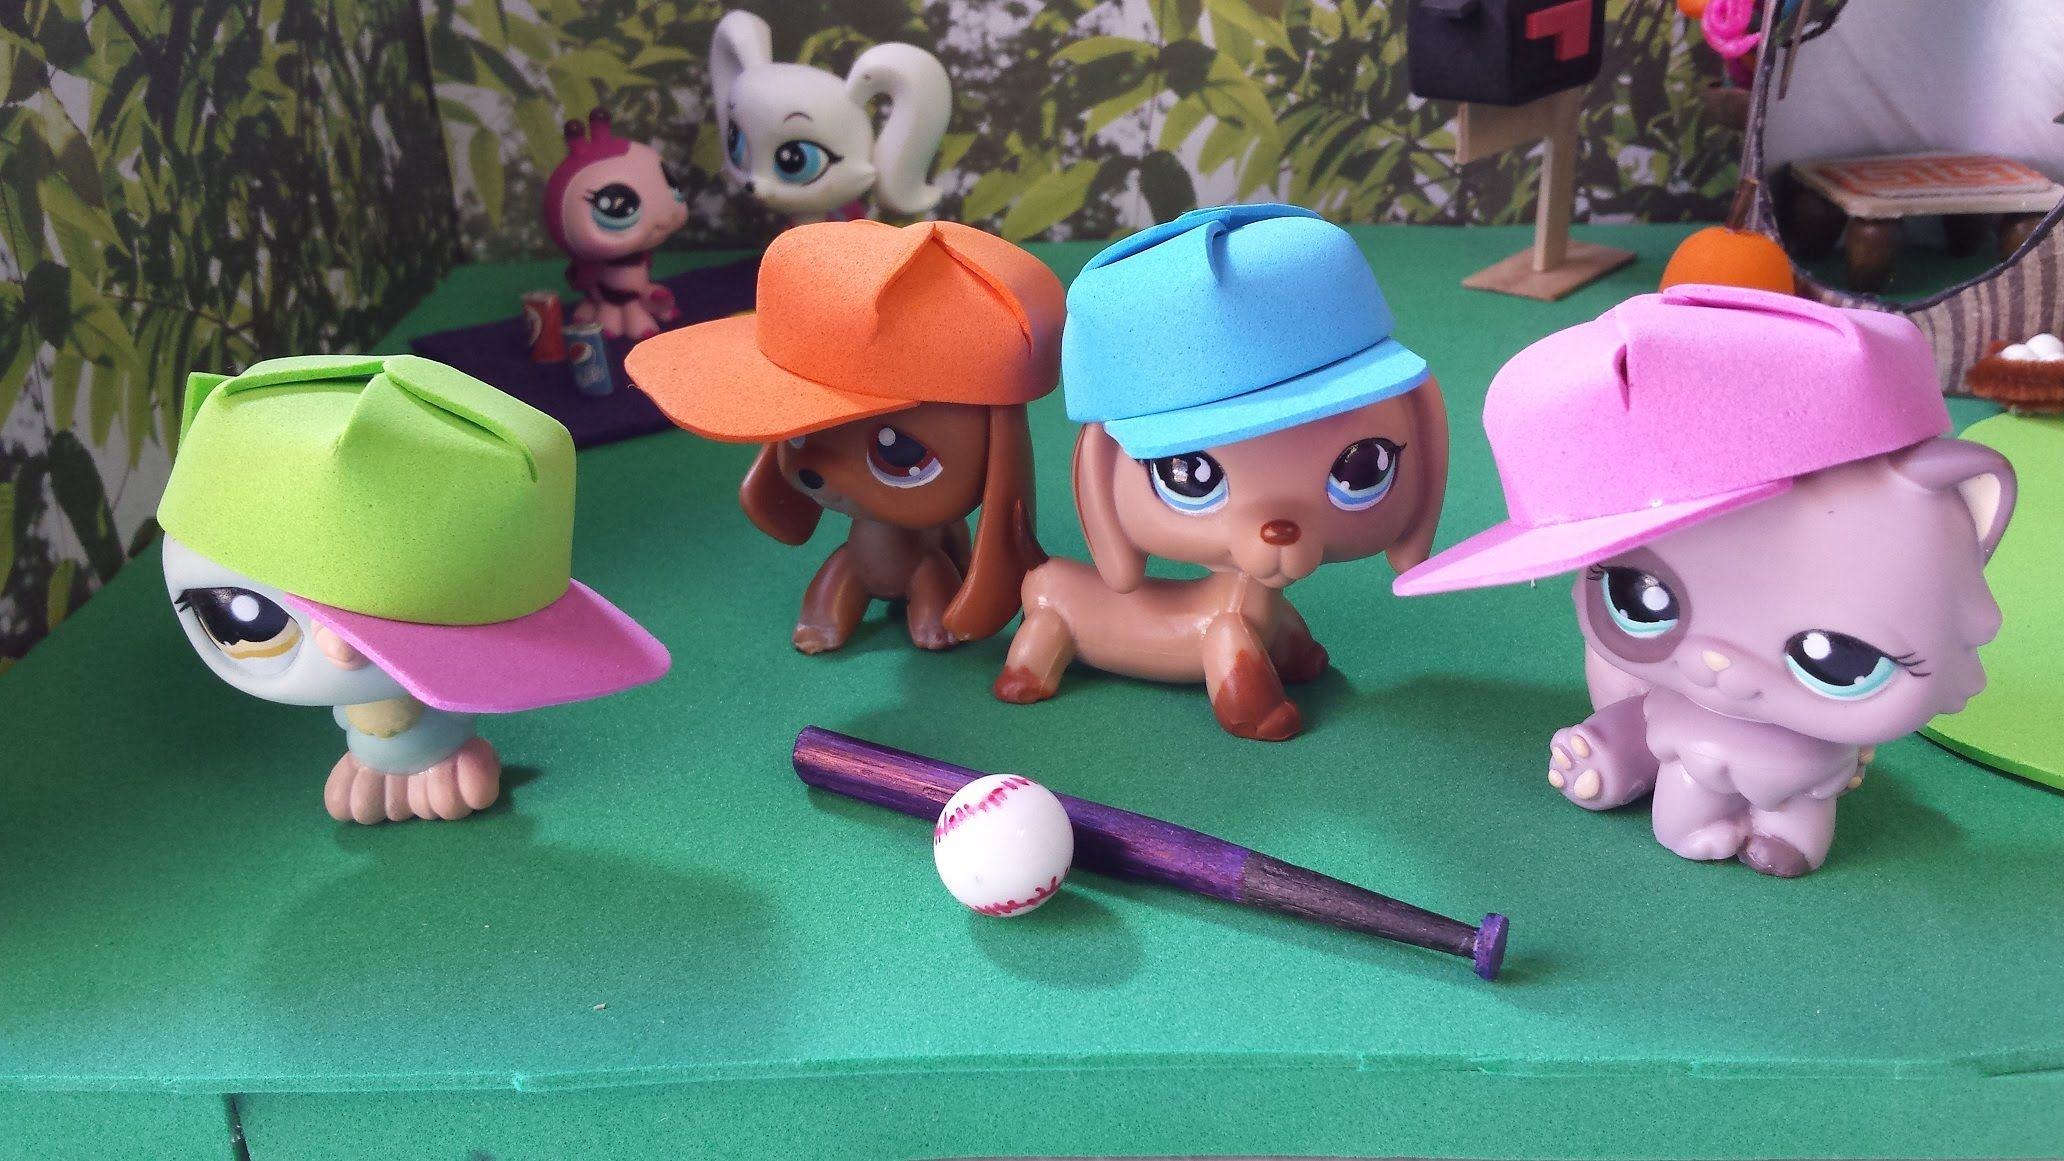 How to Make a Baseball Hat: LPS Doll DIY | Dollhouse DIY Miniatures ...